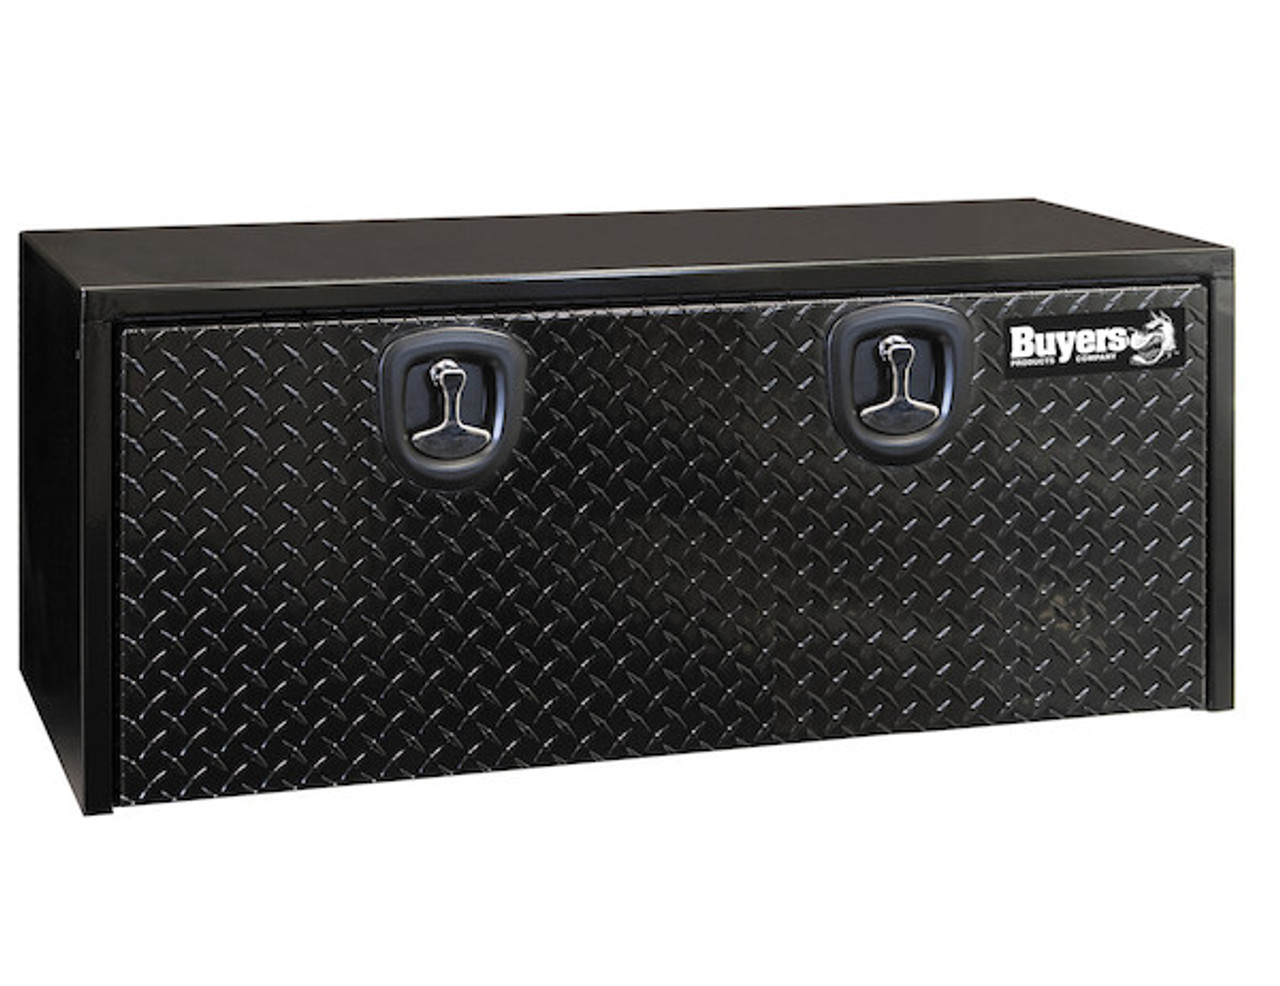 "1702510 BUYERS PRODUCTS BLACK STEEL UNDERBODY TRUCK TOOLBOX WITH ALUMINUM DOOR 18""HX18""DX48""W"